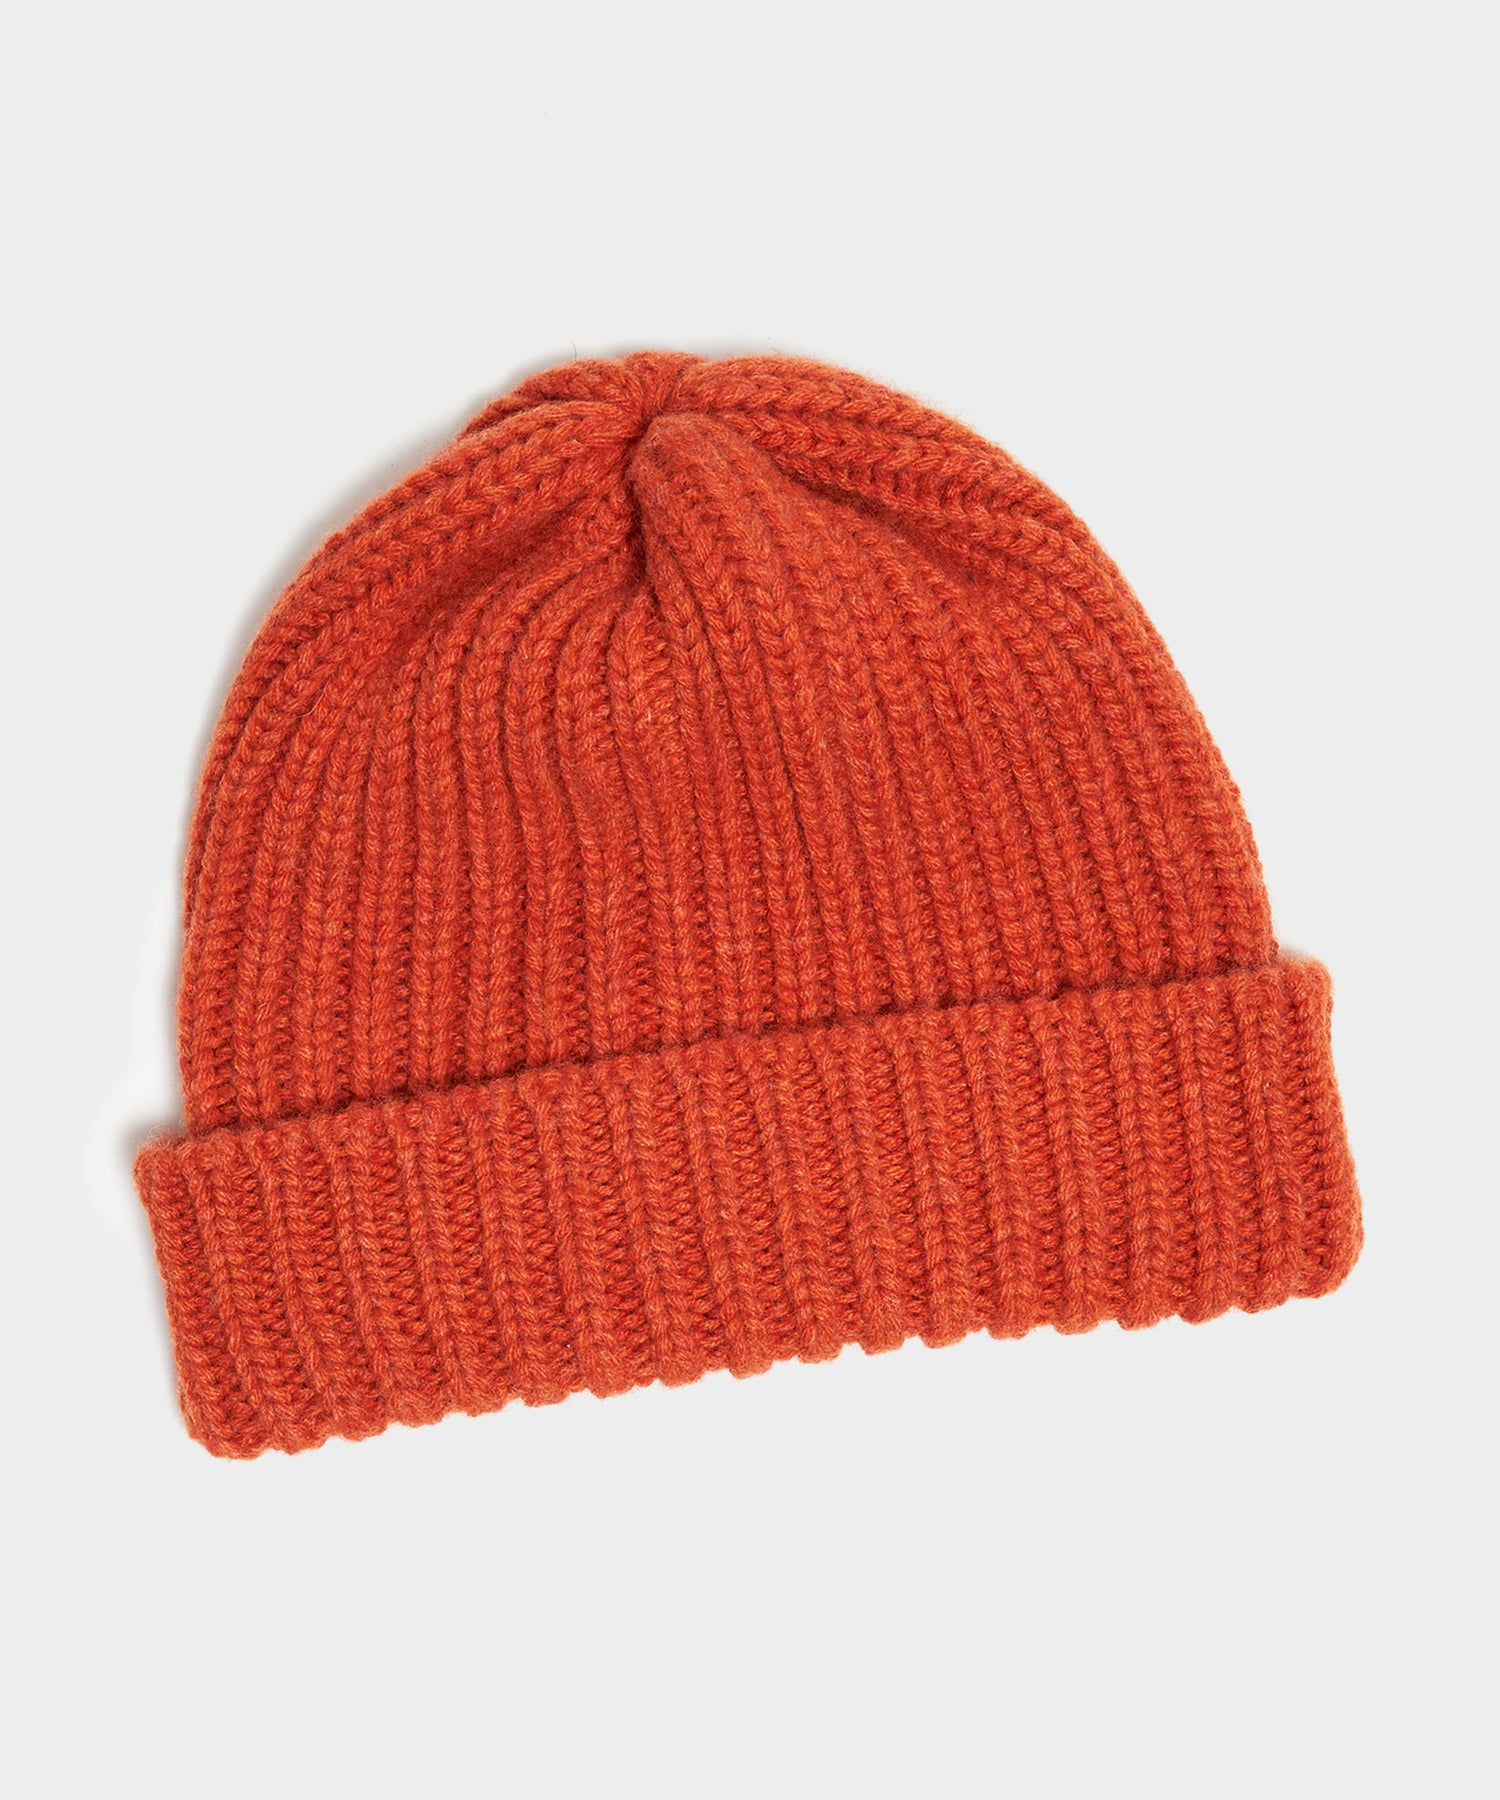 Corgi Wool/Cashmere Ribbed Hat in Furnace